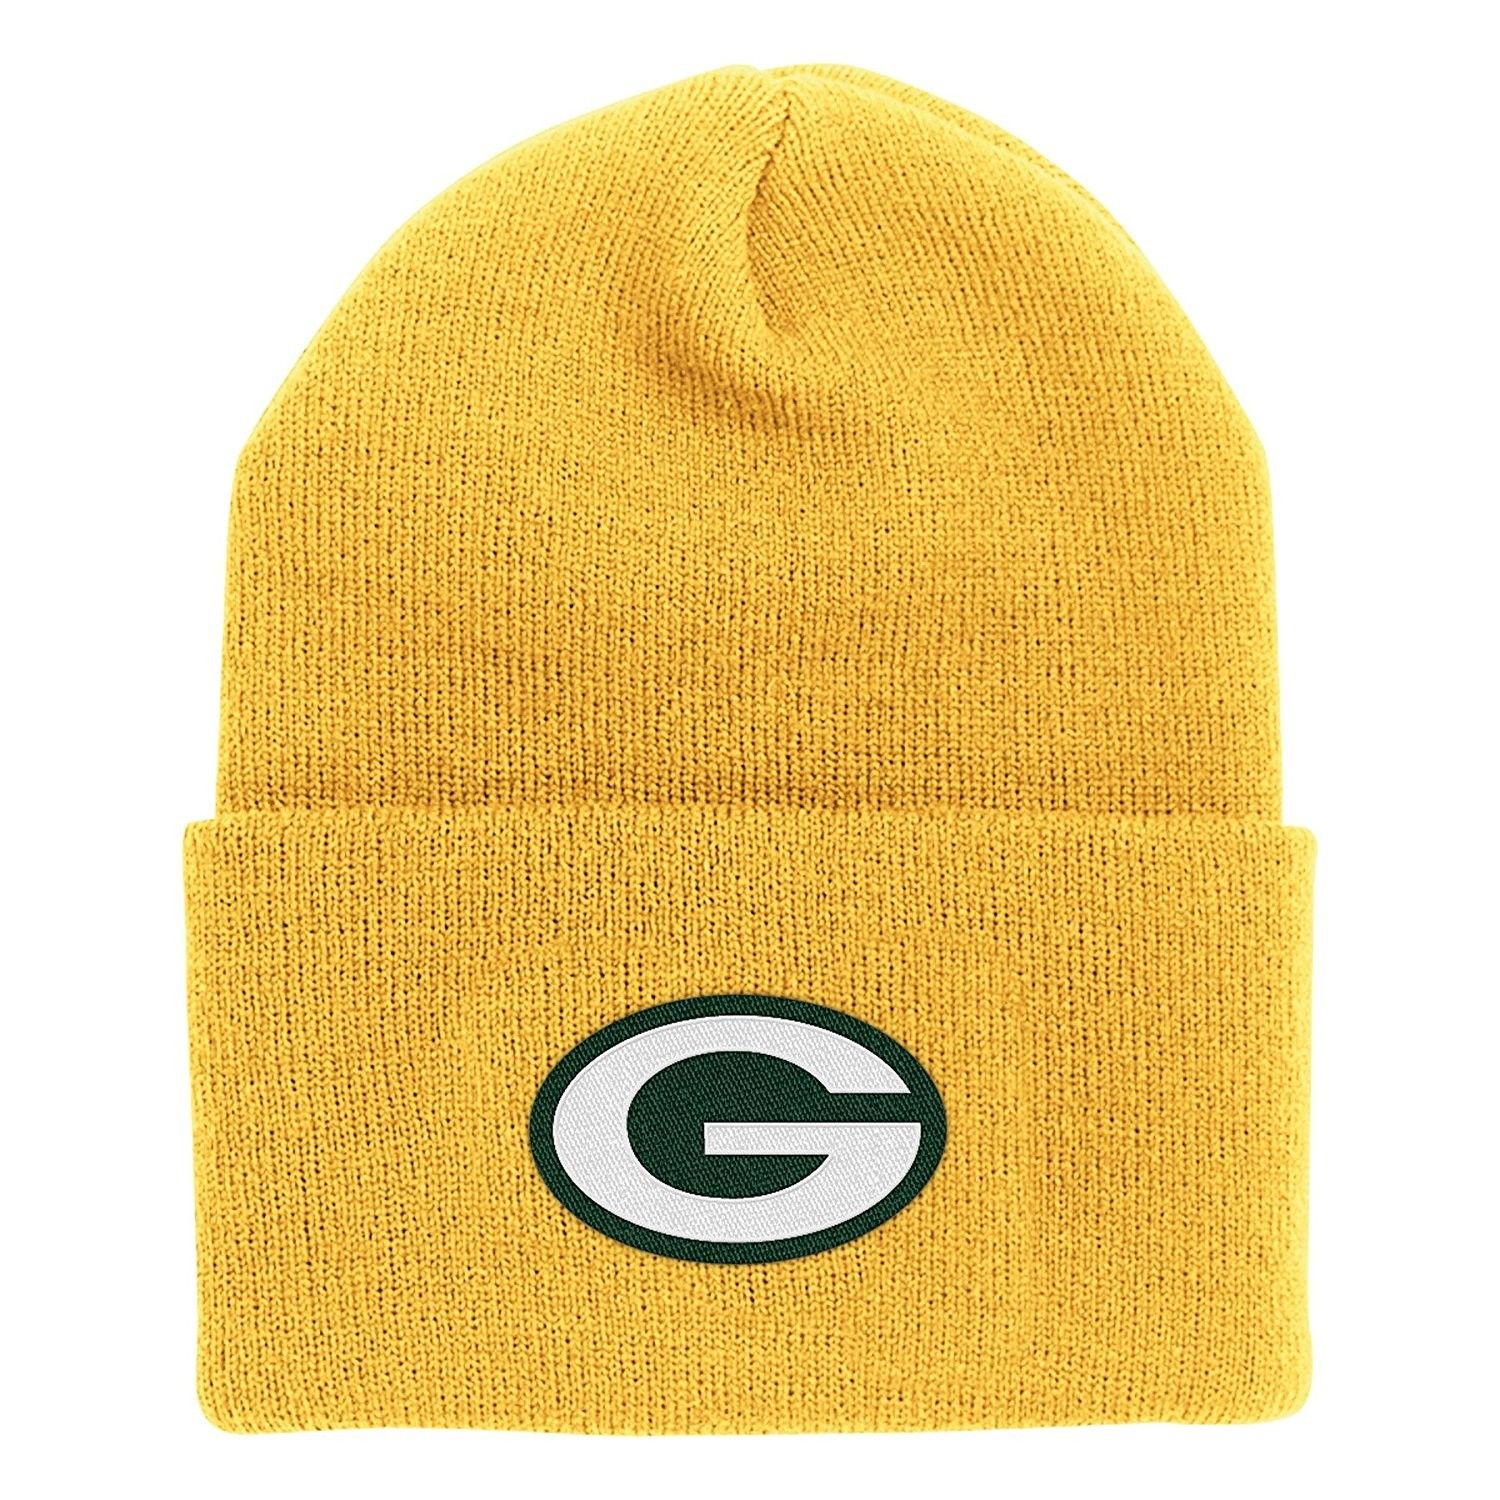 Nfl End Zone Cuffed Knit Hat K010z Green Bay Packers One Size Fits All C6116fj611j Green Bay Packers Clothing Hats Knitted Hats